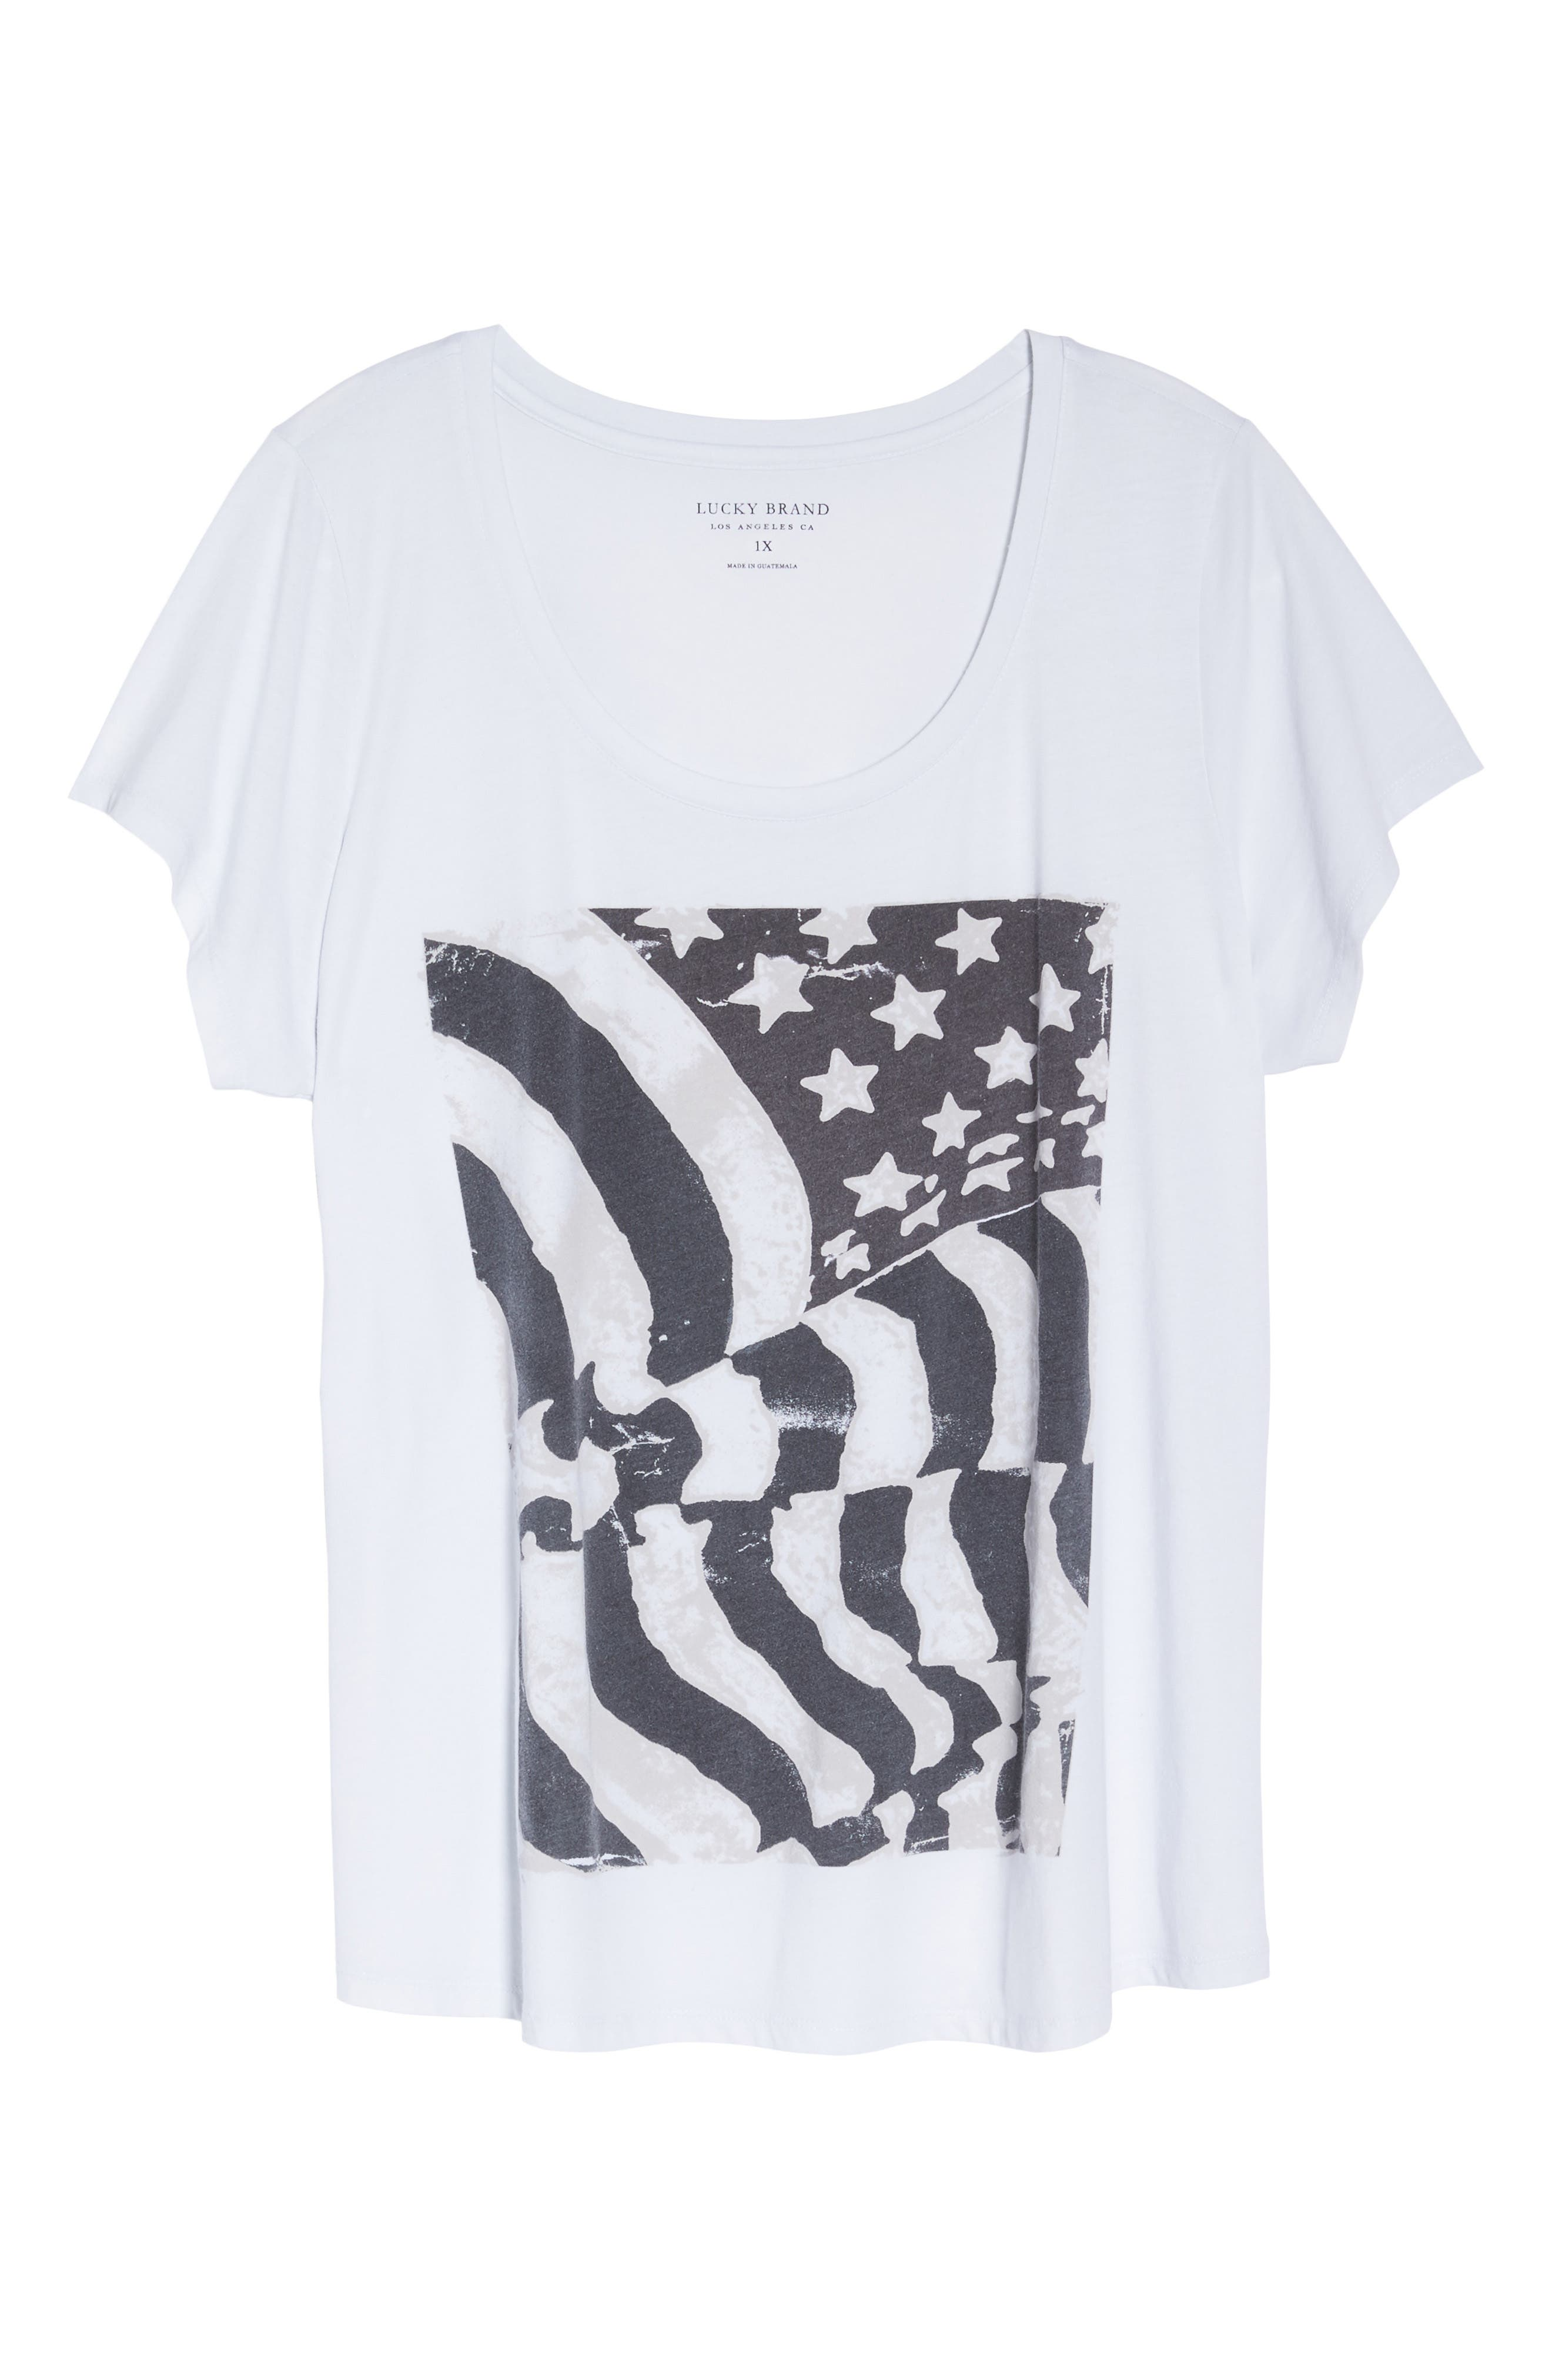 LUCKY BRAND,                             Flag Graphic Tee,                             Alternate thumbnail 7, color,                             002